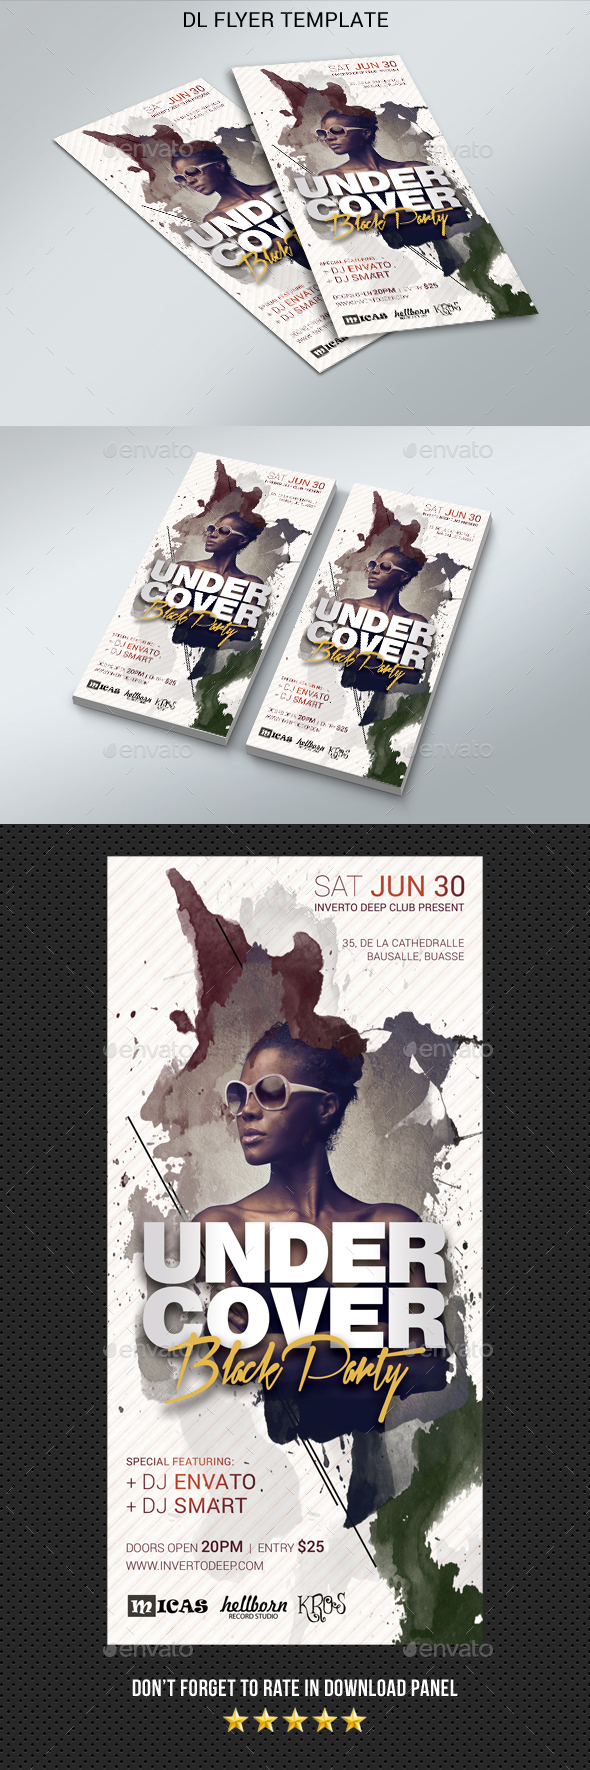 DL Undercover Party Flyer - Clubs & Parties Events